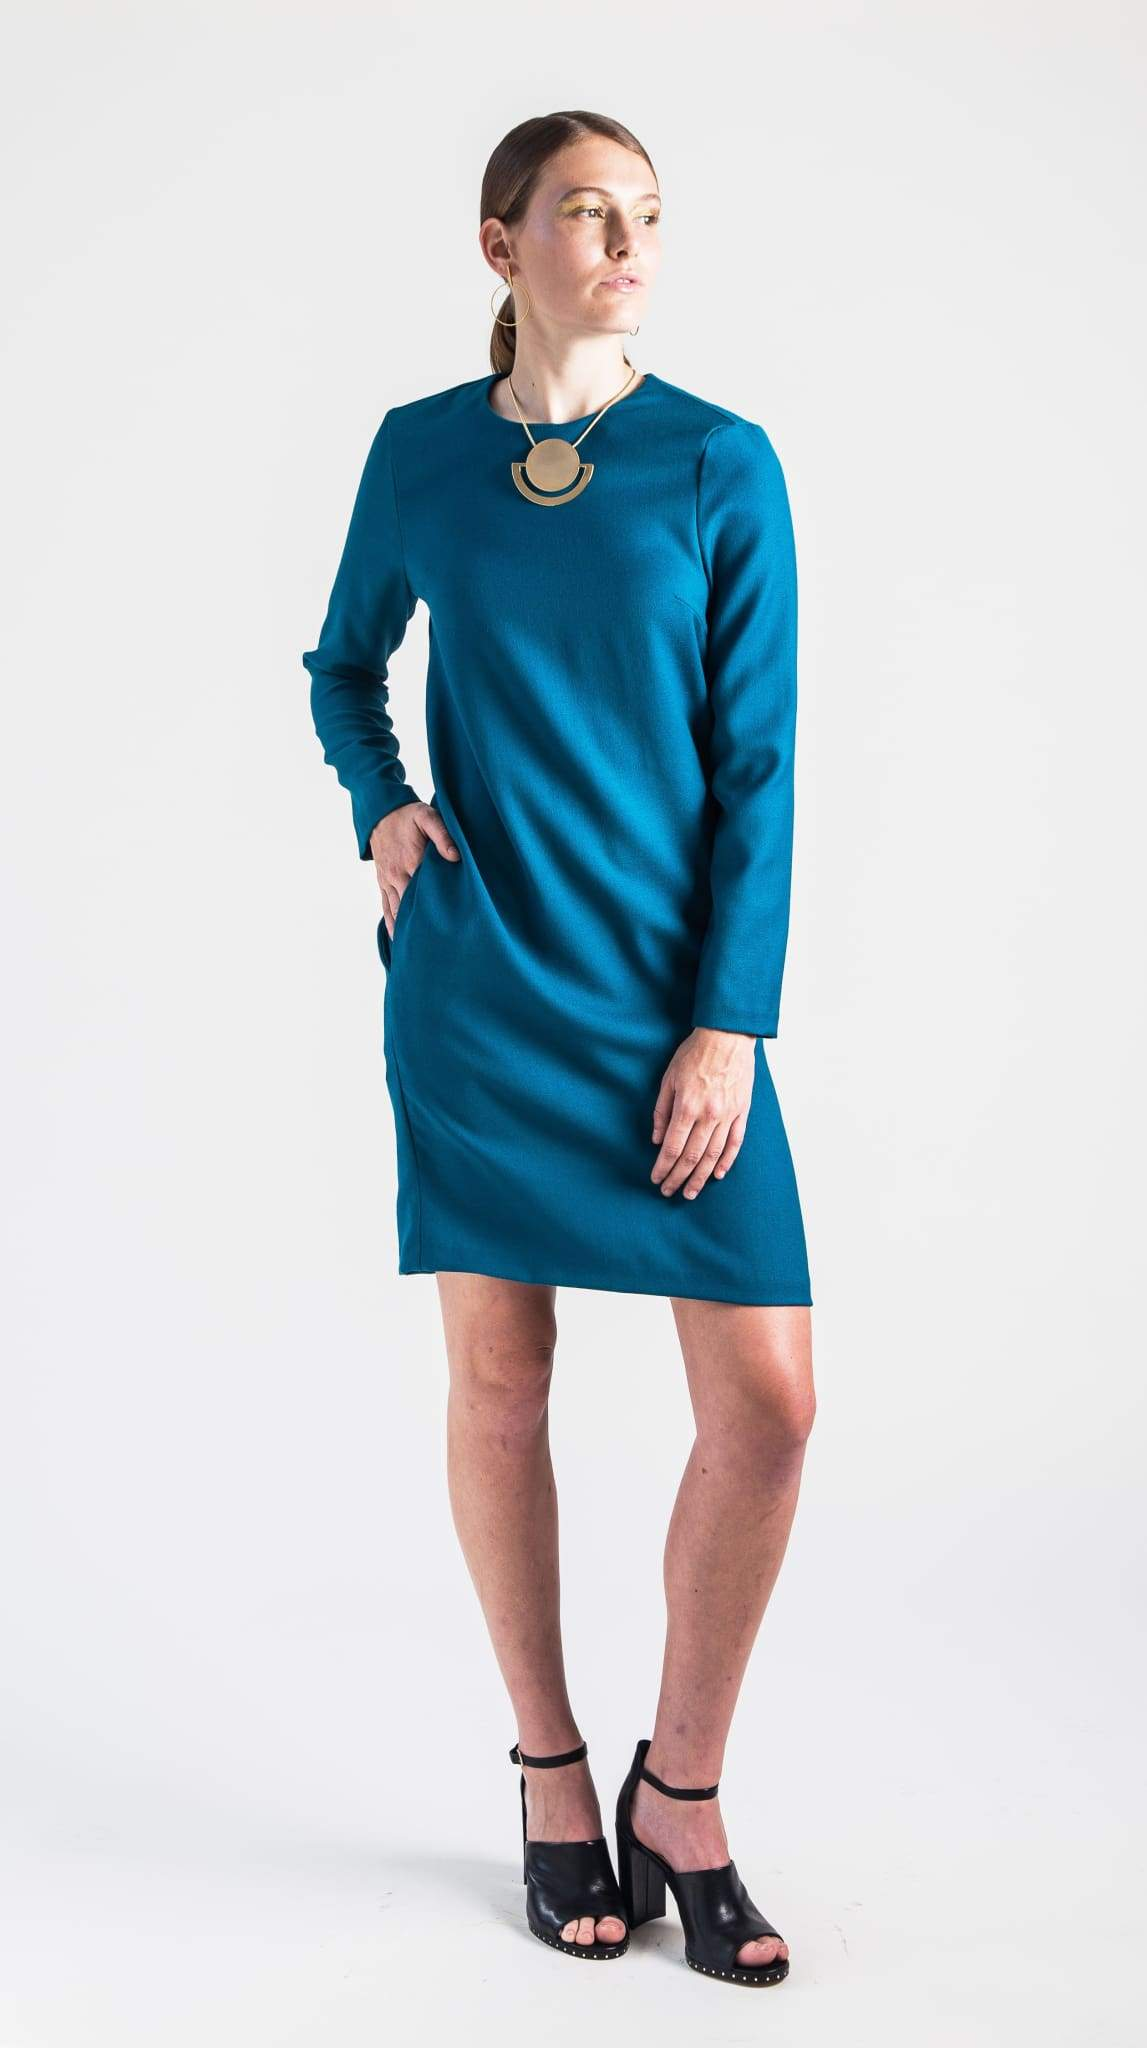 Clare Classic Teal Shift Dress by Varyform Nineteenth Amendment